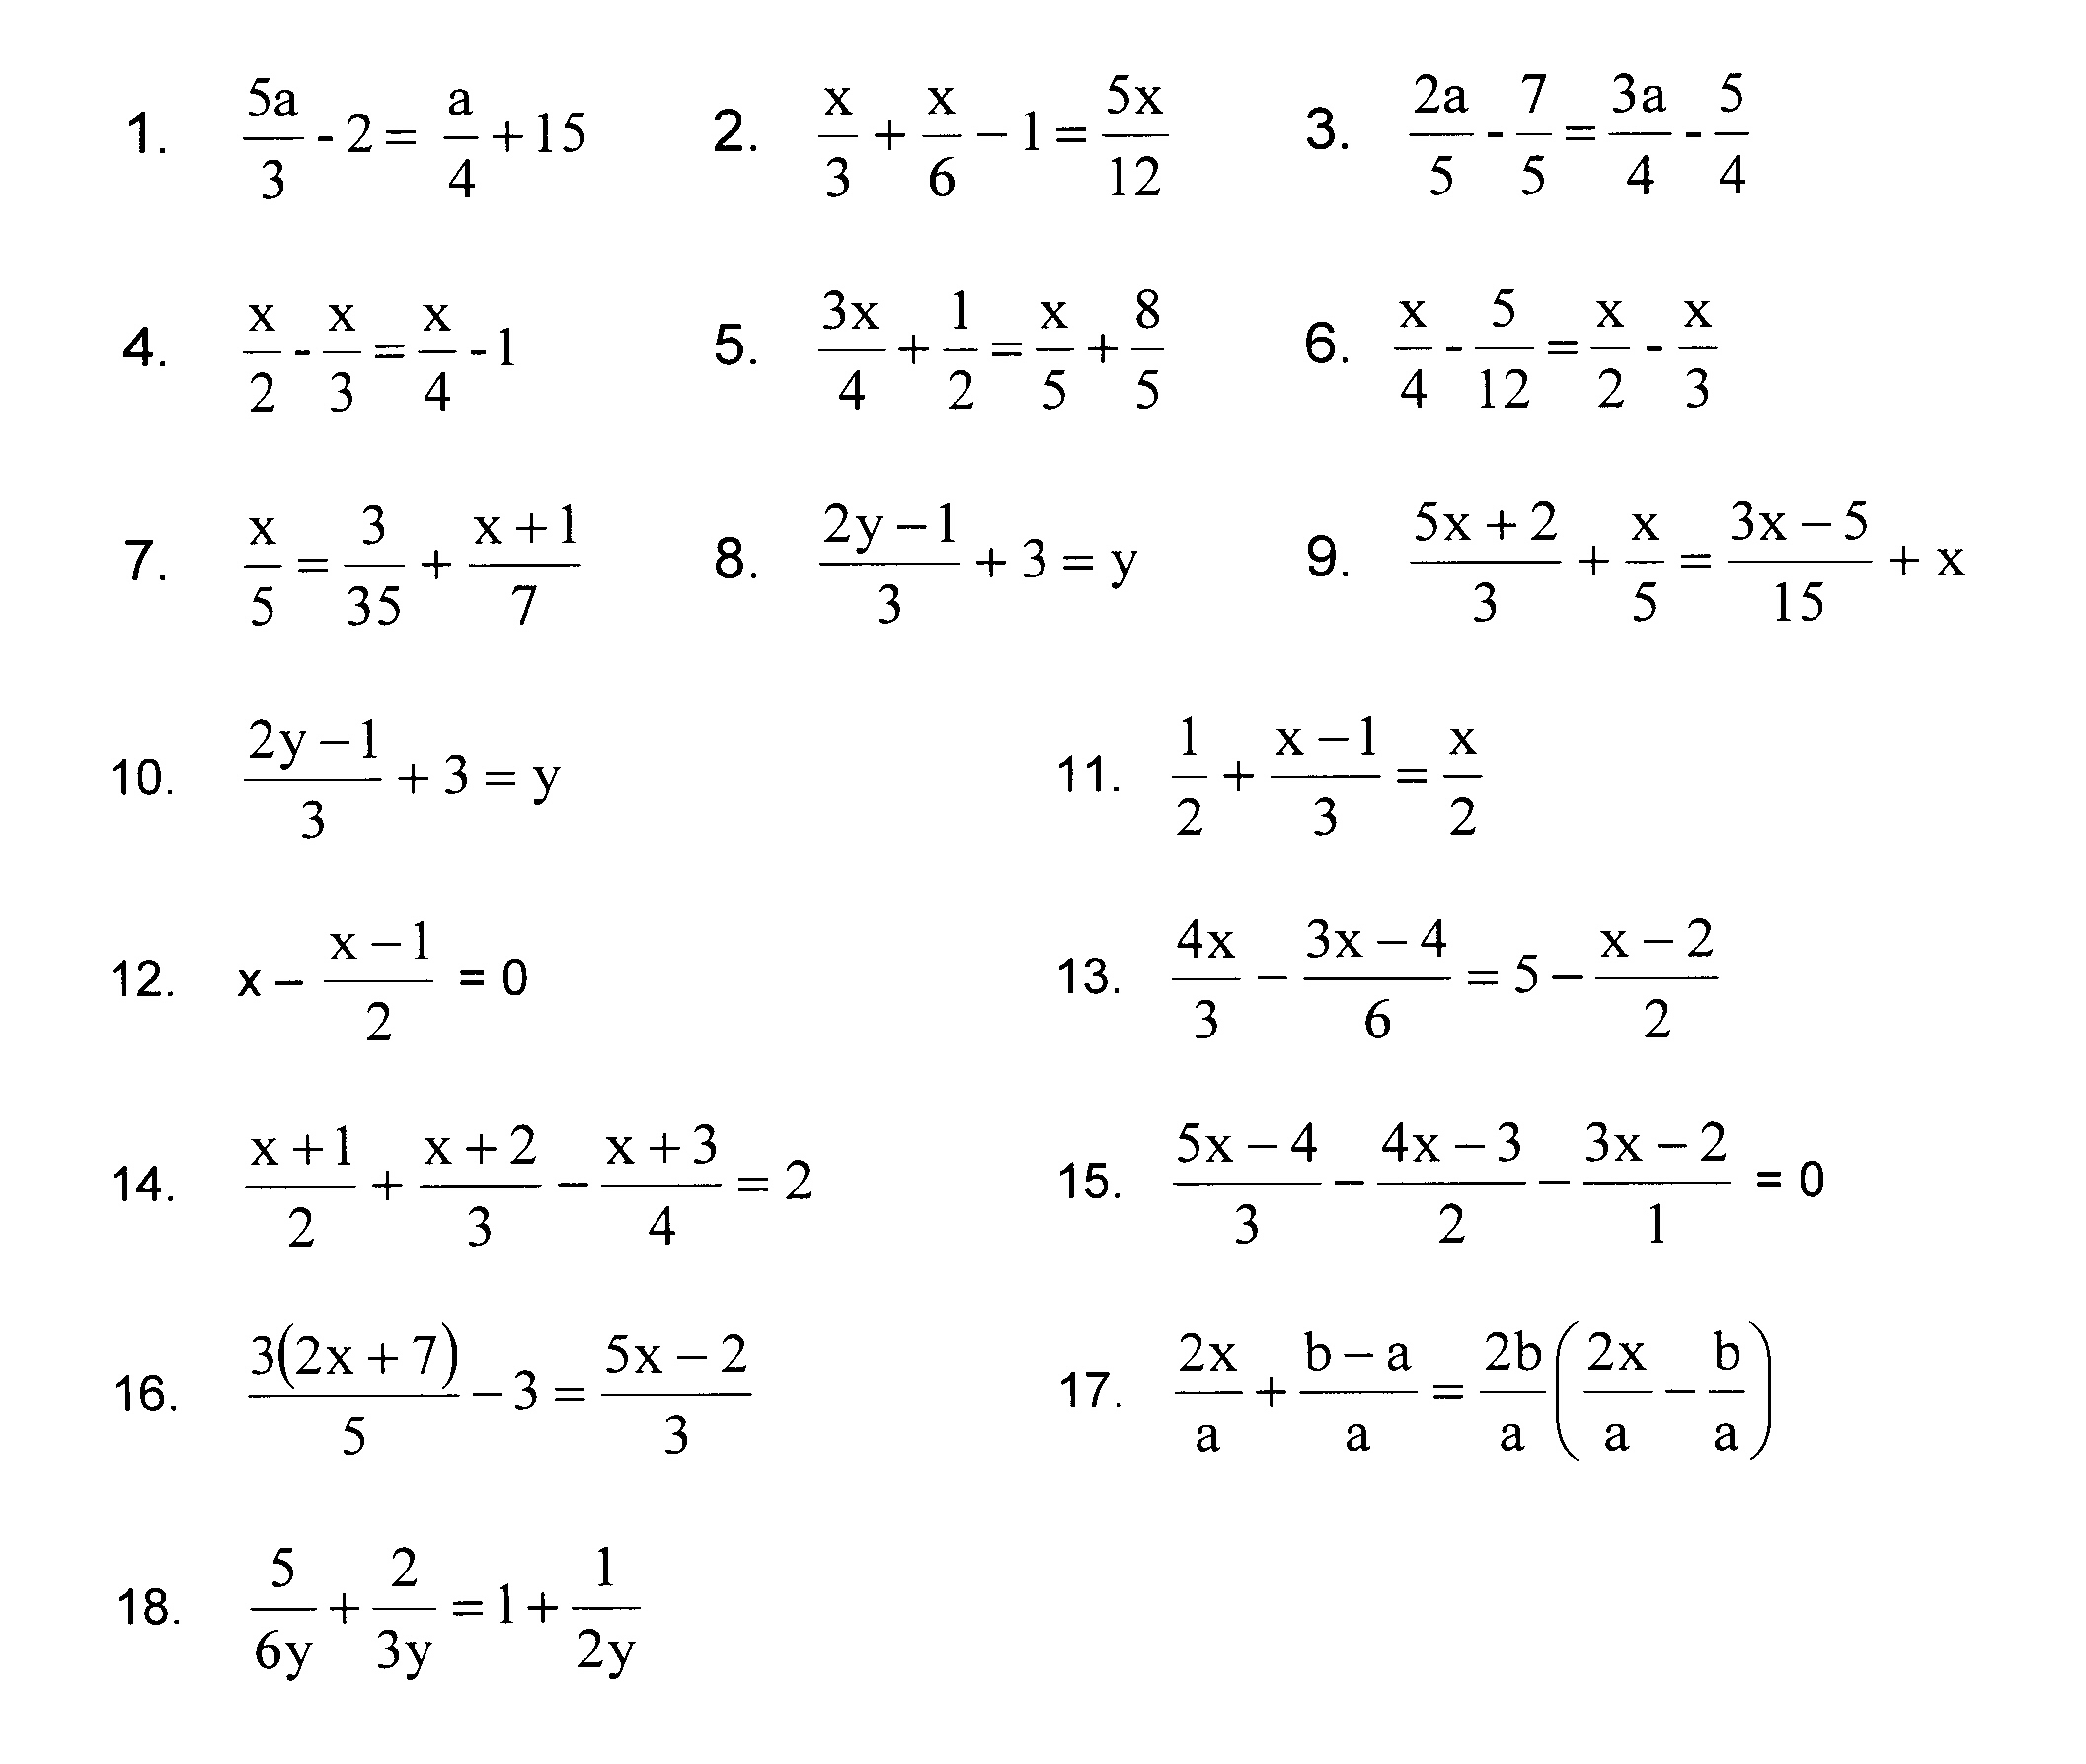 Solving Equations With Fractions And Variables On Both